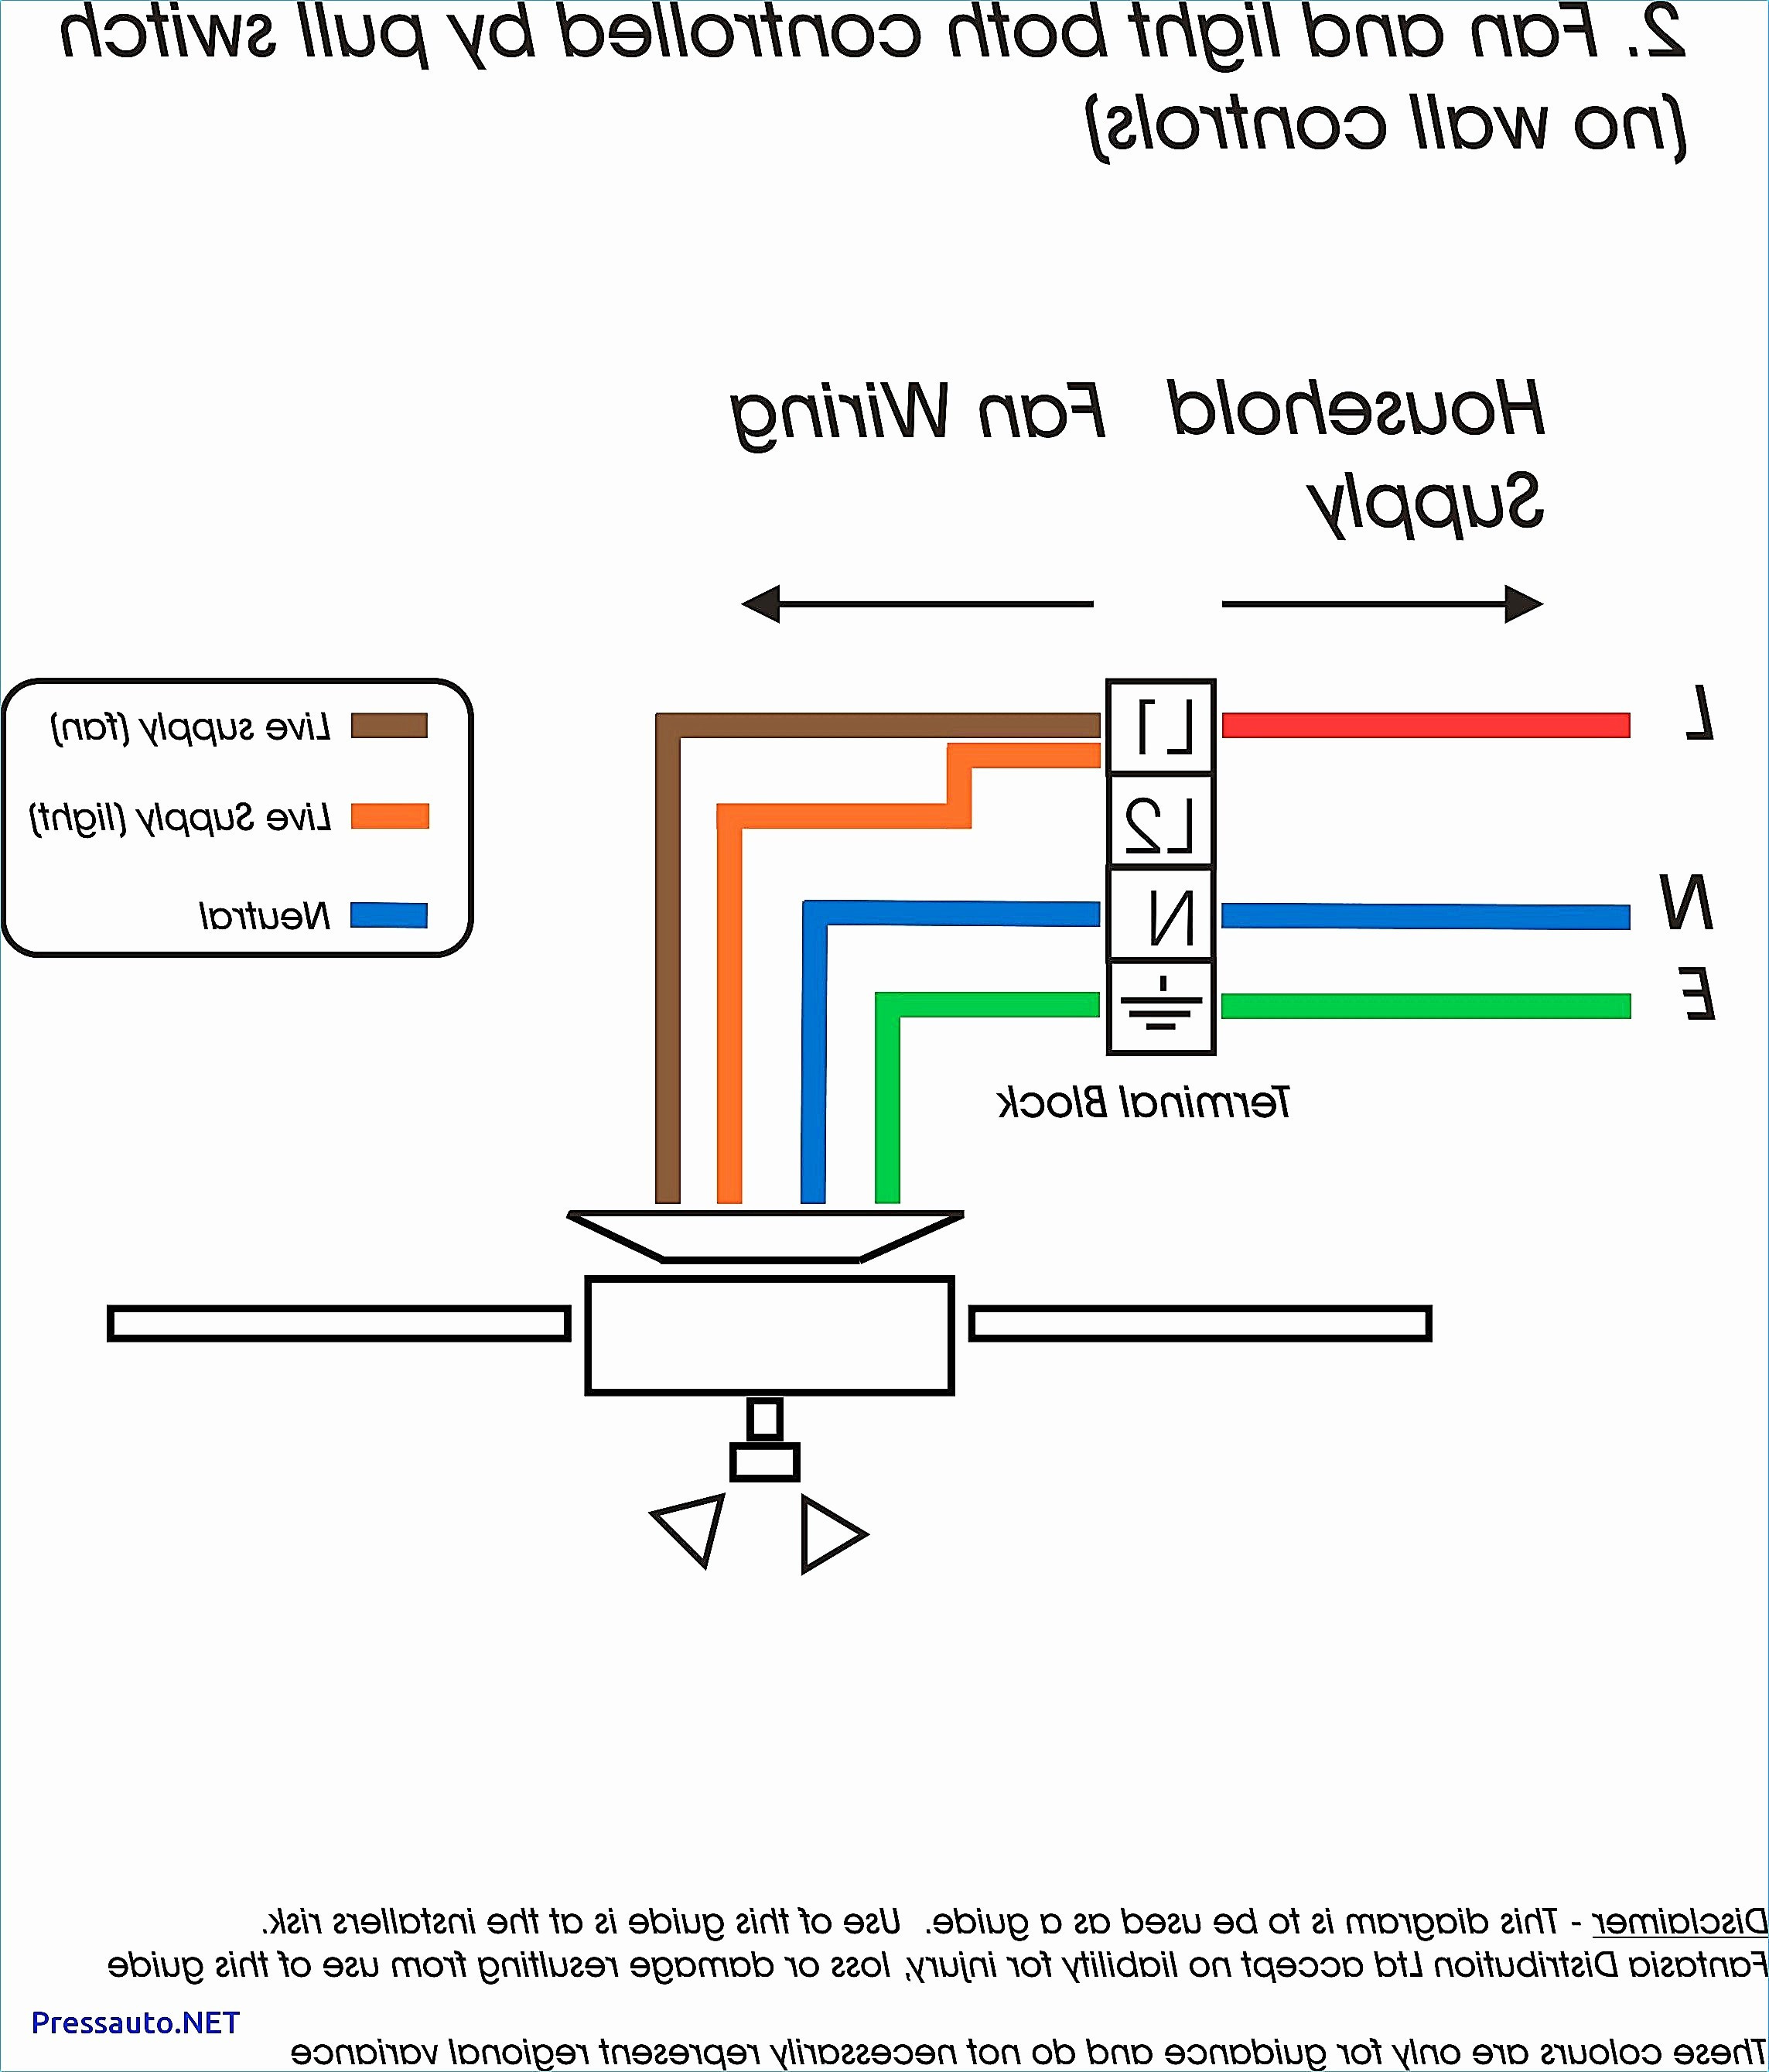 cat5e crossover cable wiring diagram Download-Wiring Diagram For Cat5 Crossover Cable Best Wiring Diagram For A Ethernet Switch Inspirationa Ethernet Switch 1-h